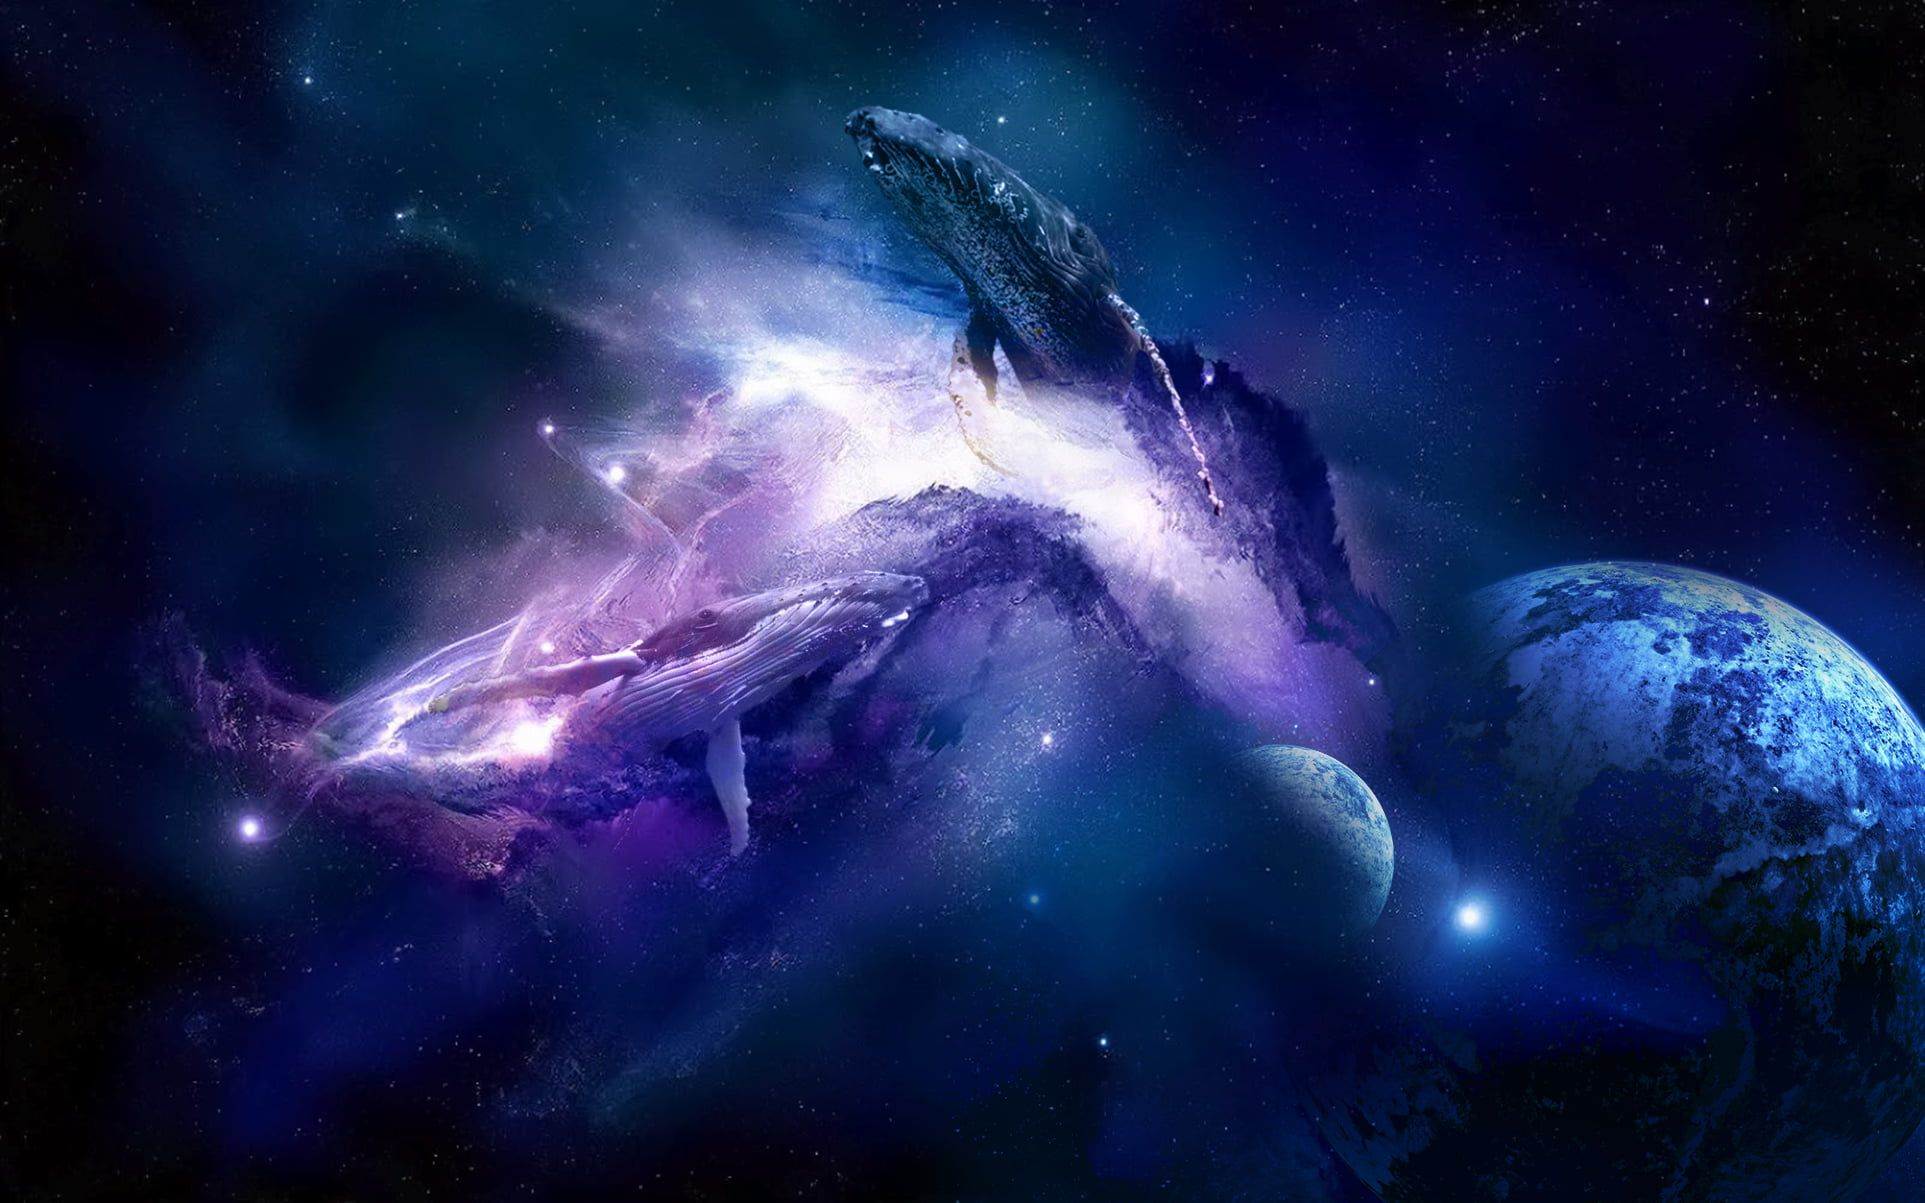 Space Whale 1080p Wallpaper Hdwallpaper Desktop In 2020 Space Desktop Backgrounds Space Iphone Wallpaper Space Whale